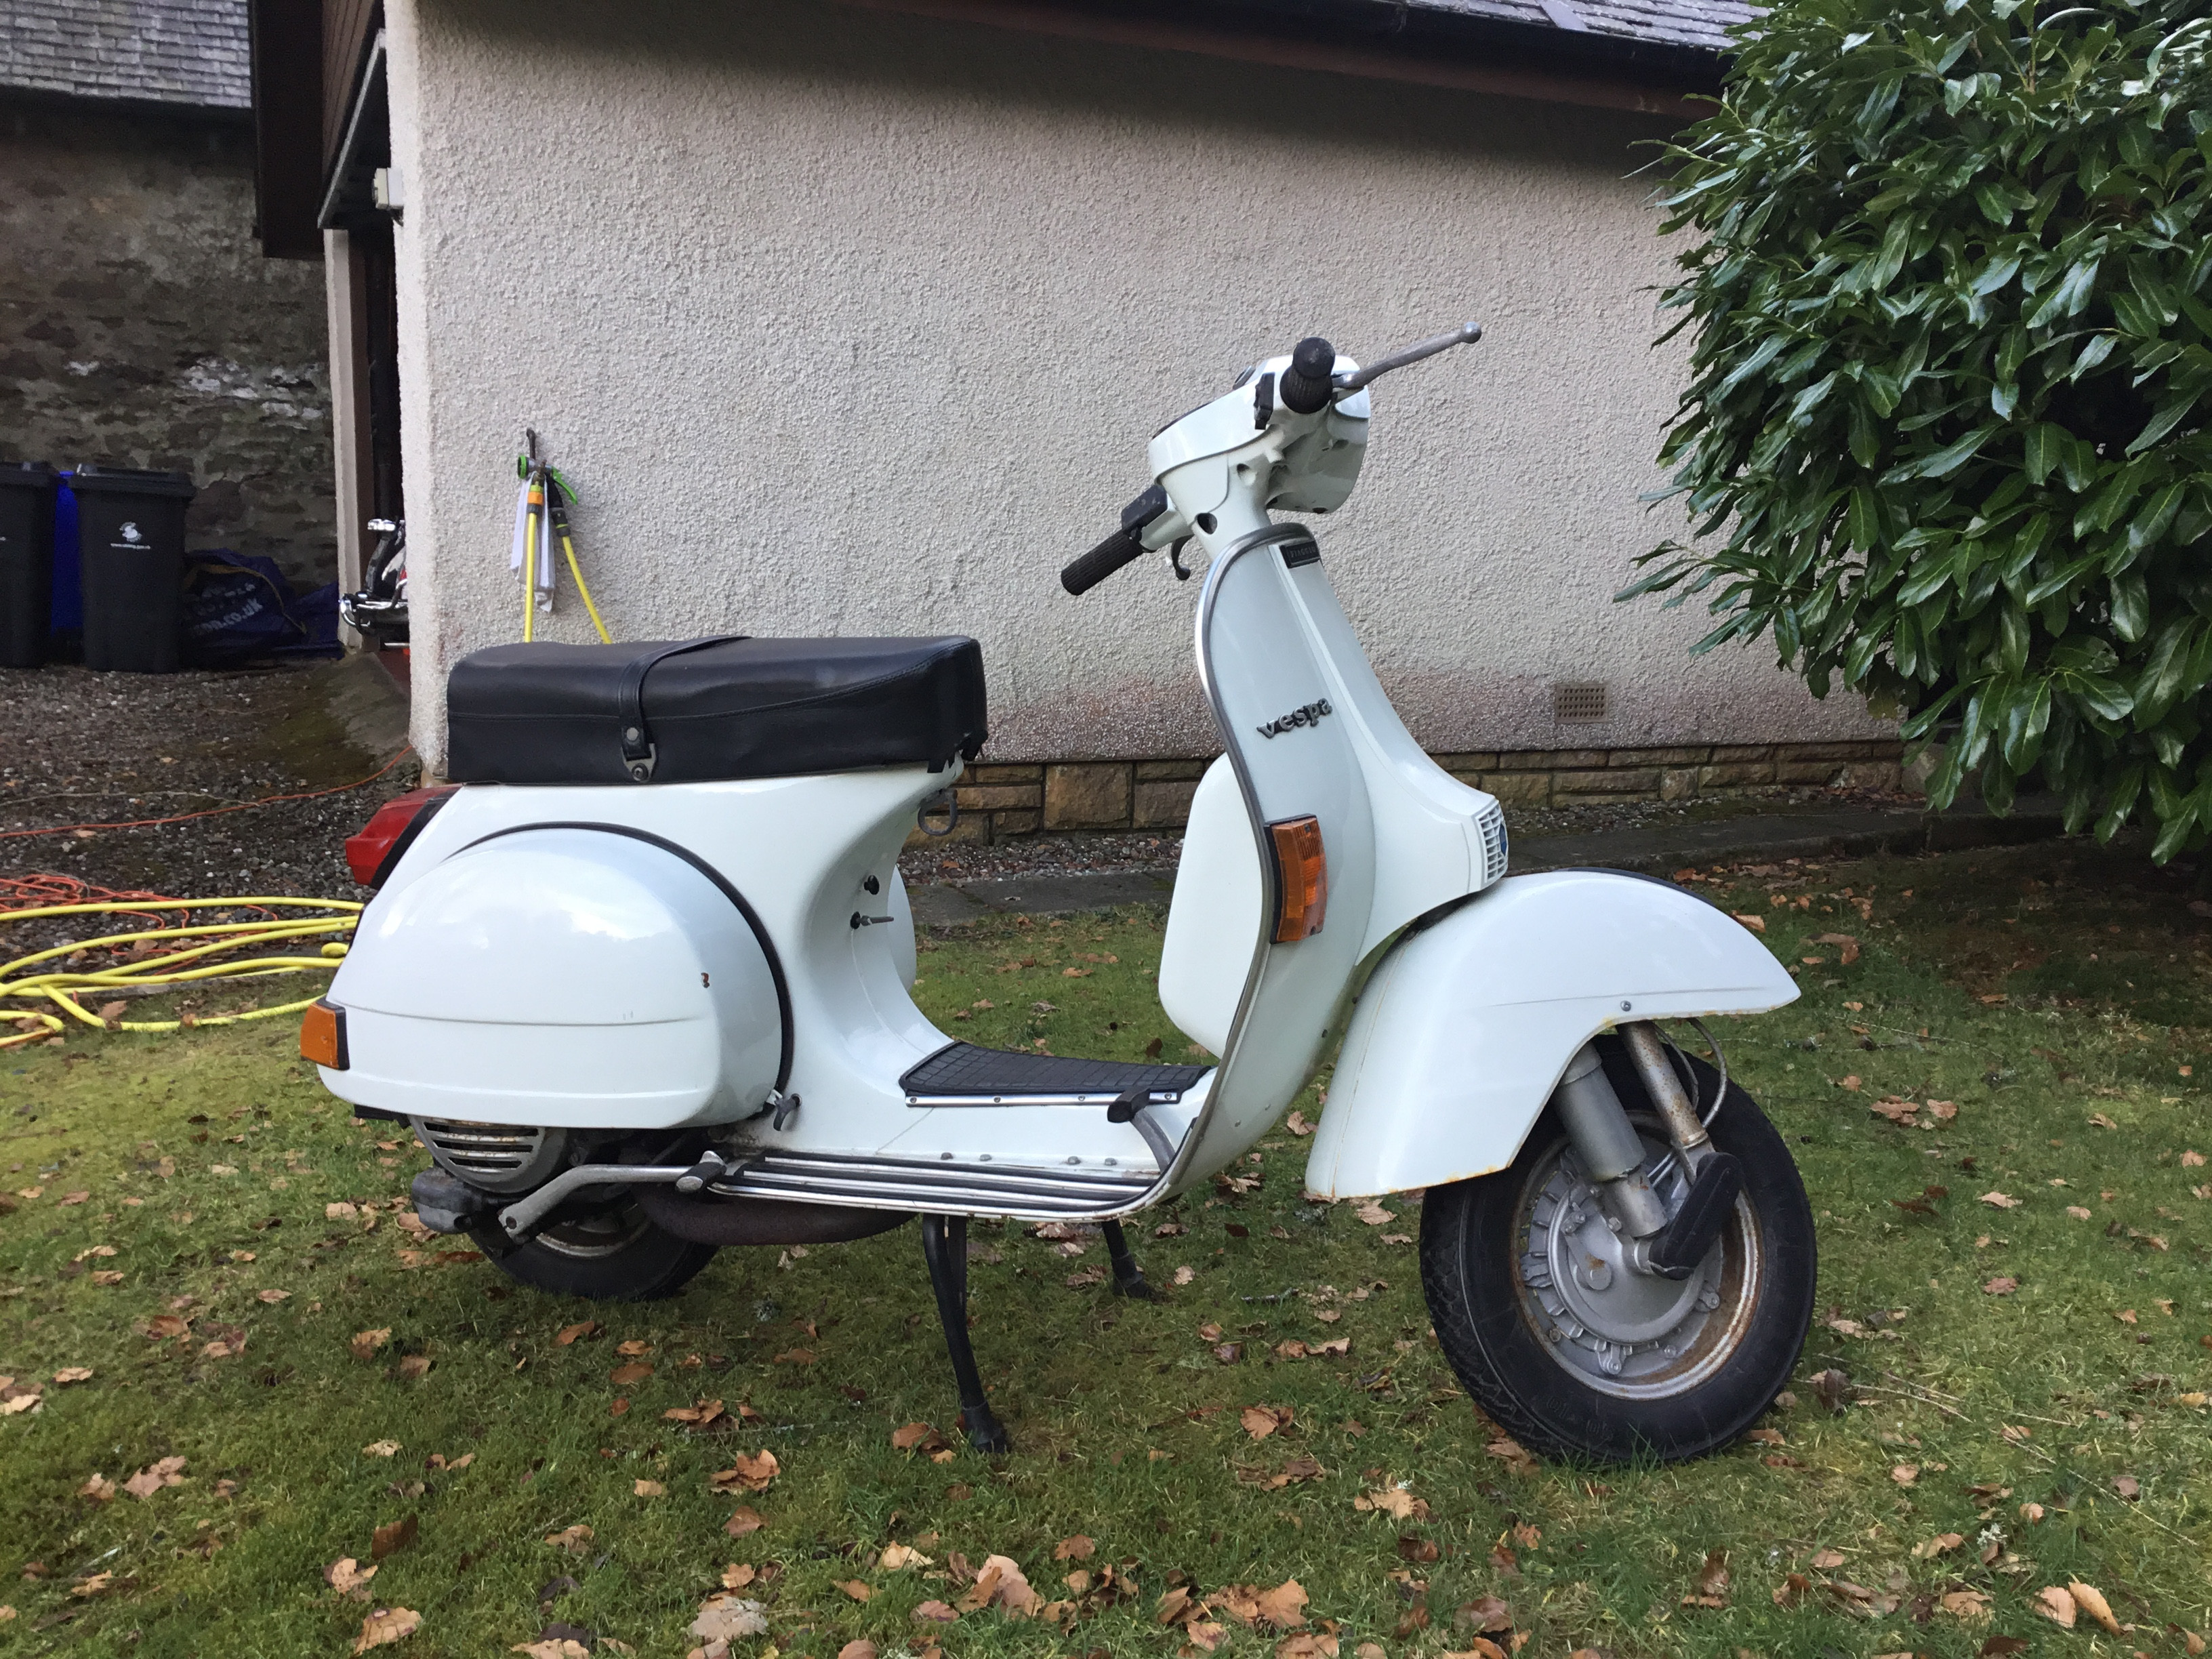 Piaggio Vespa Hire Callander,stirlingshire